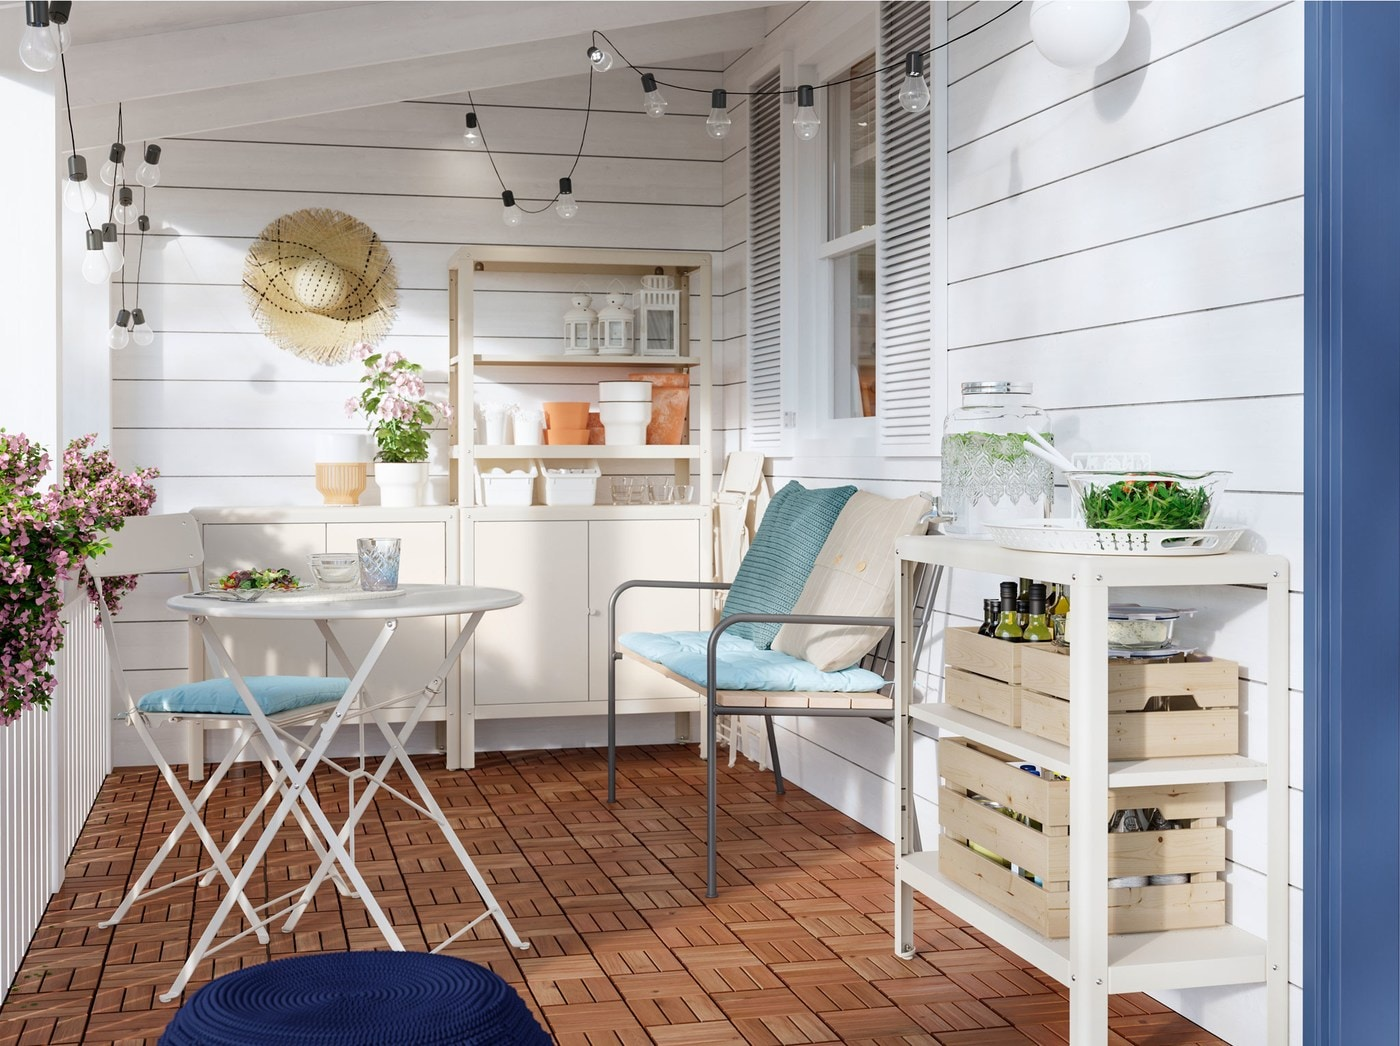 A veranda with a sofa, table and chair, with blue and cream cushions, an IKEA KOLBJÖRN off-white shelving unit and light chains.